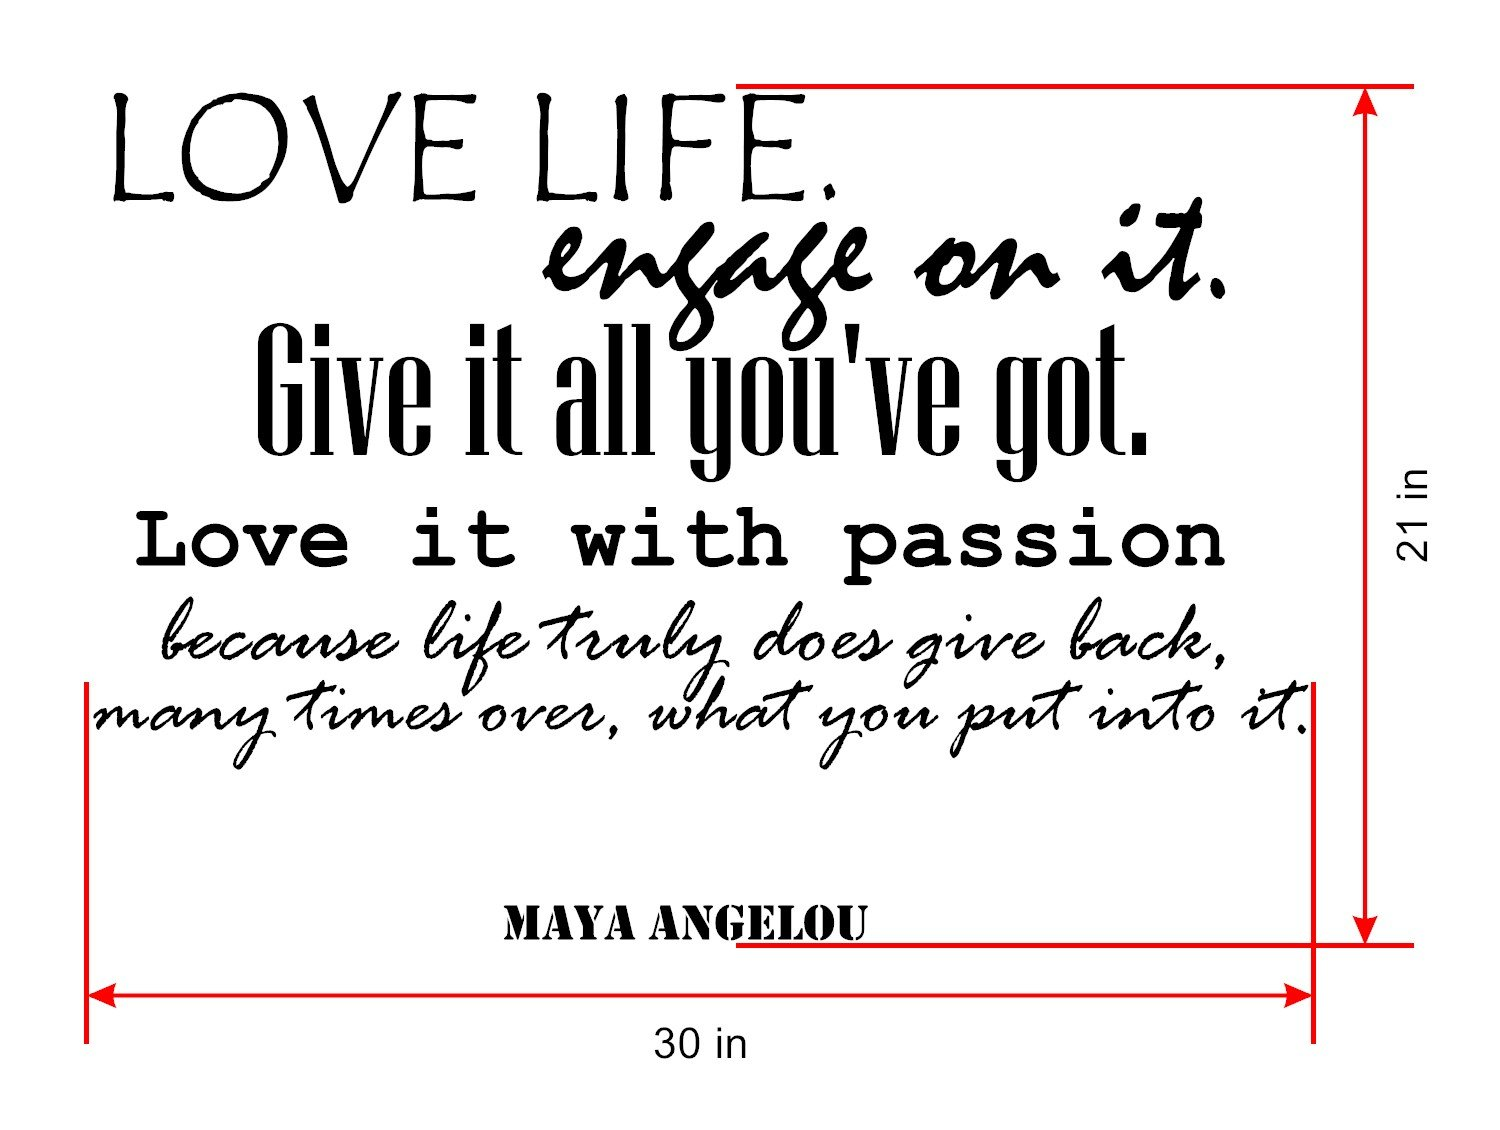 Maya Angelou Quotes Inspirational Wall Decals Vinyl Wall Art: A Wall Decal  Inspiring Quotes   Famous Quotes Wall Decor   Wall Art Stickers Quote  Decals ...